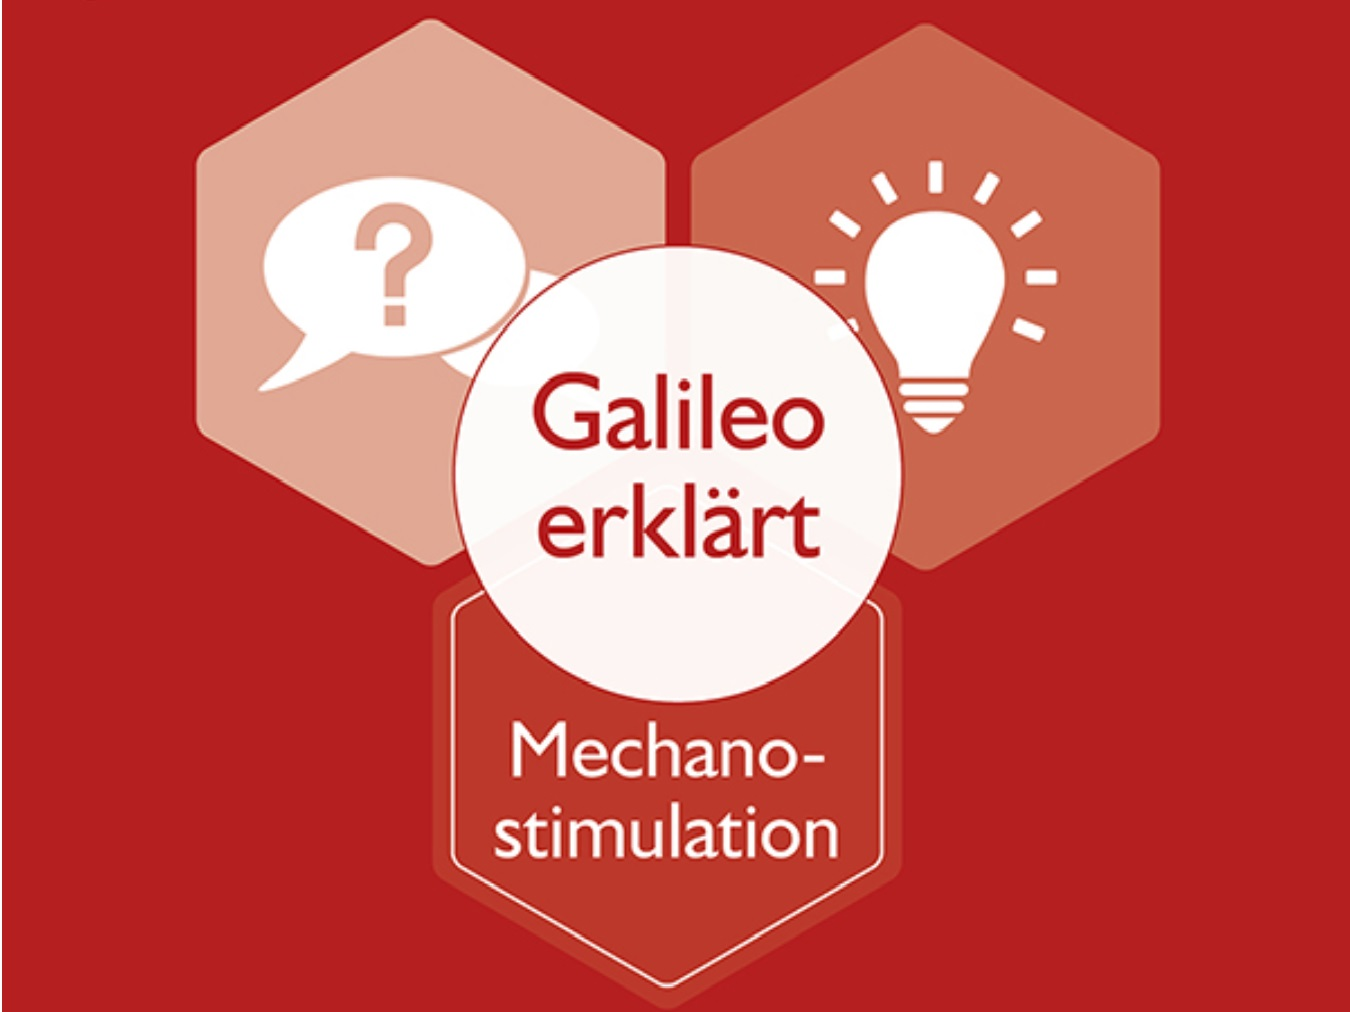 Galileo erklärt - Mechanostimulation